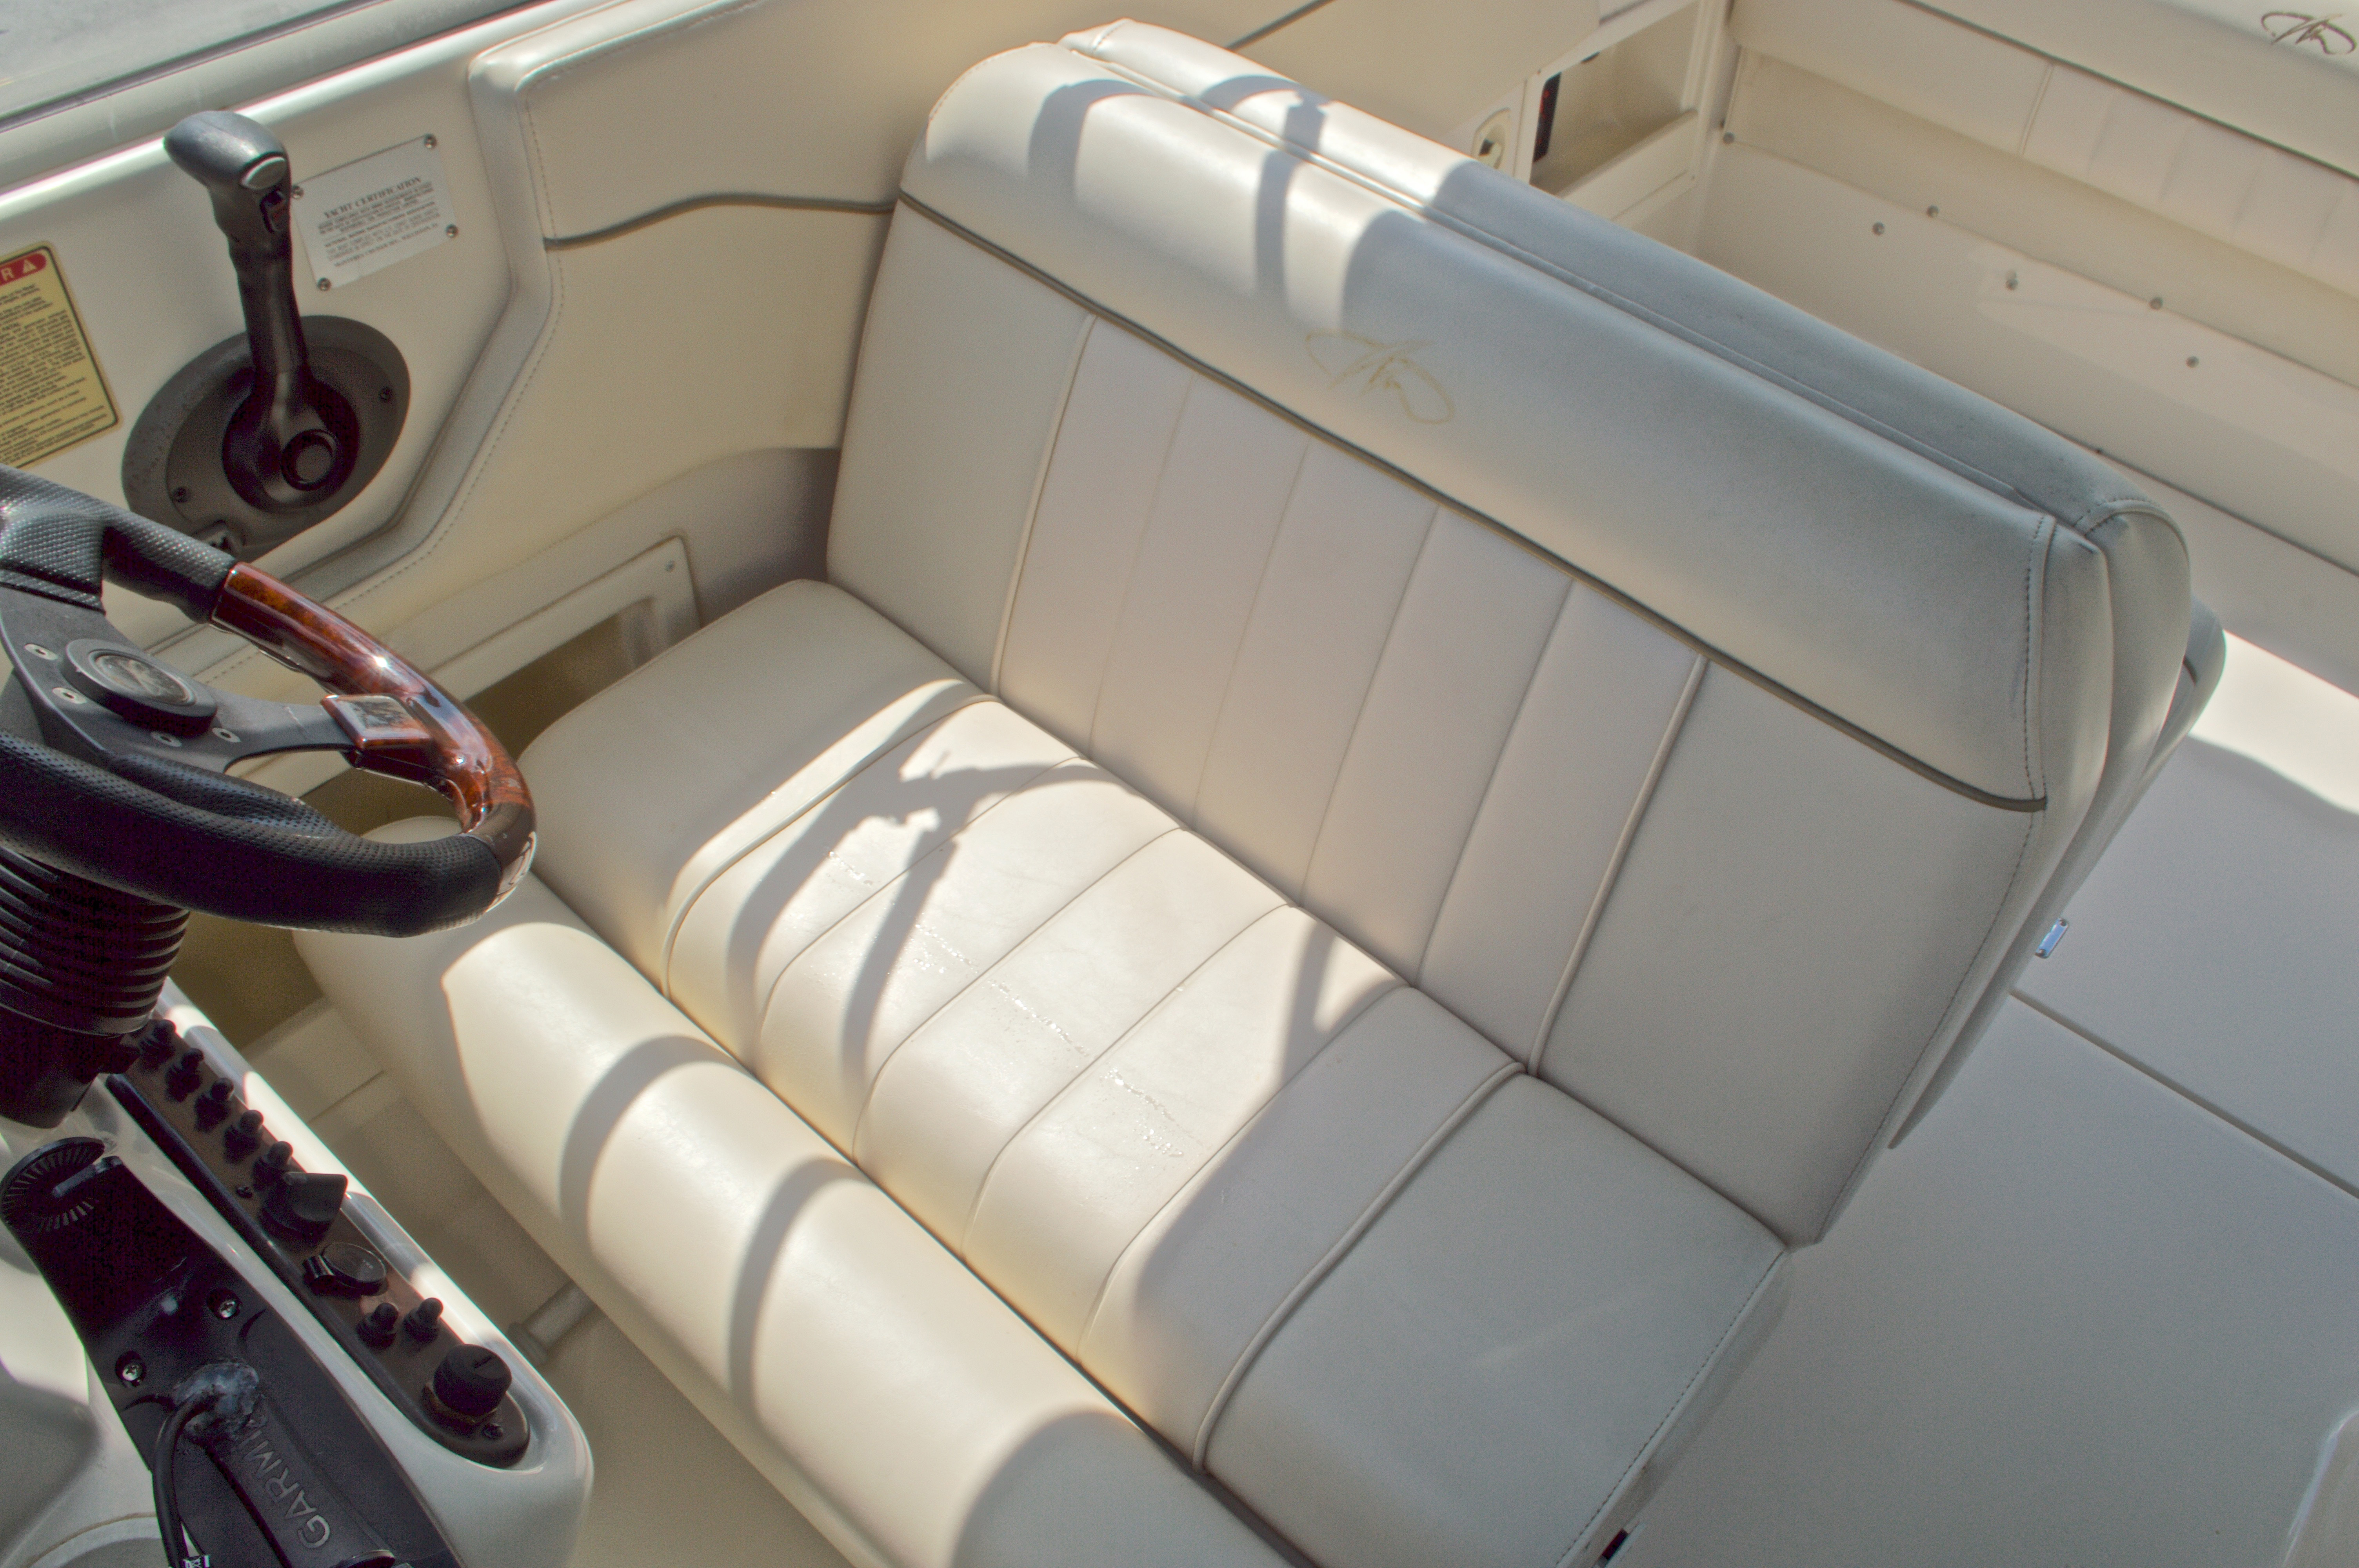 Thumbnail 28 for Used 2002 Monterey 262 Cruiser boat for sale in West Palm Beach, FL